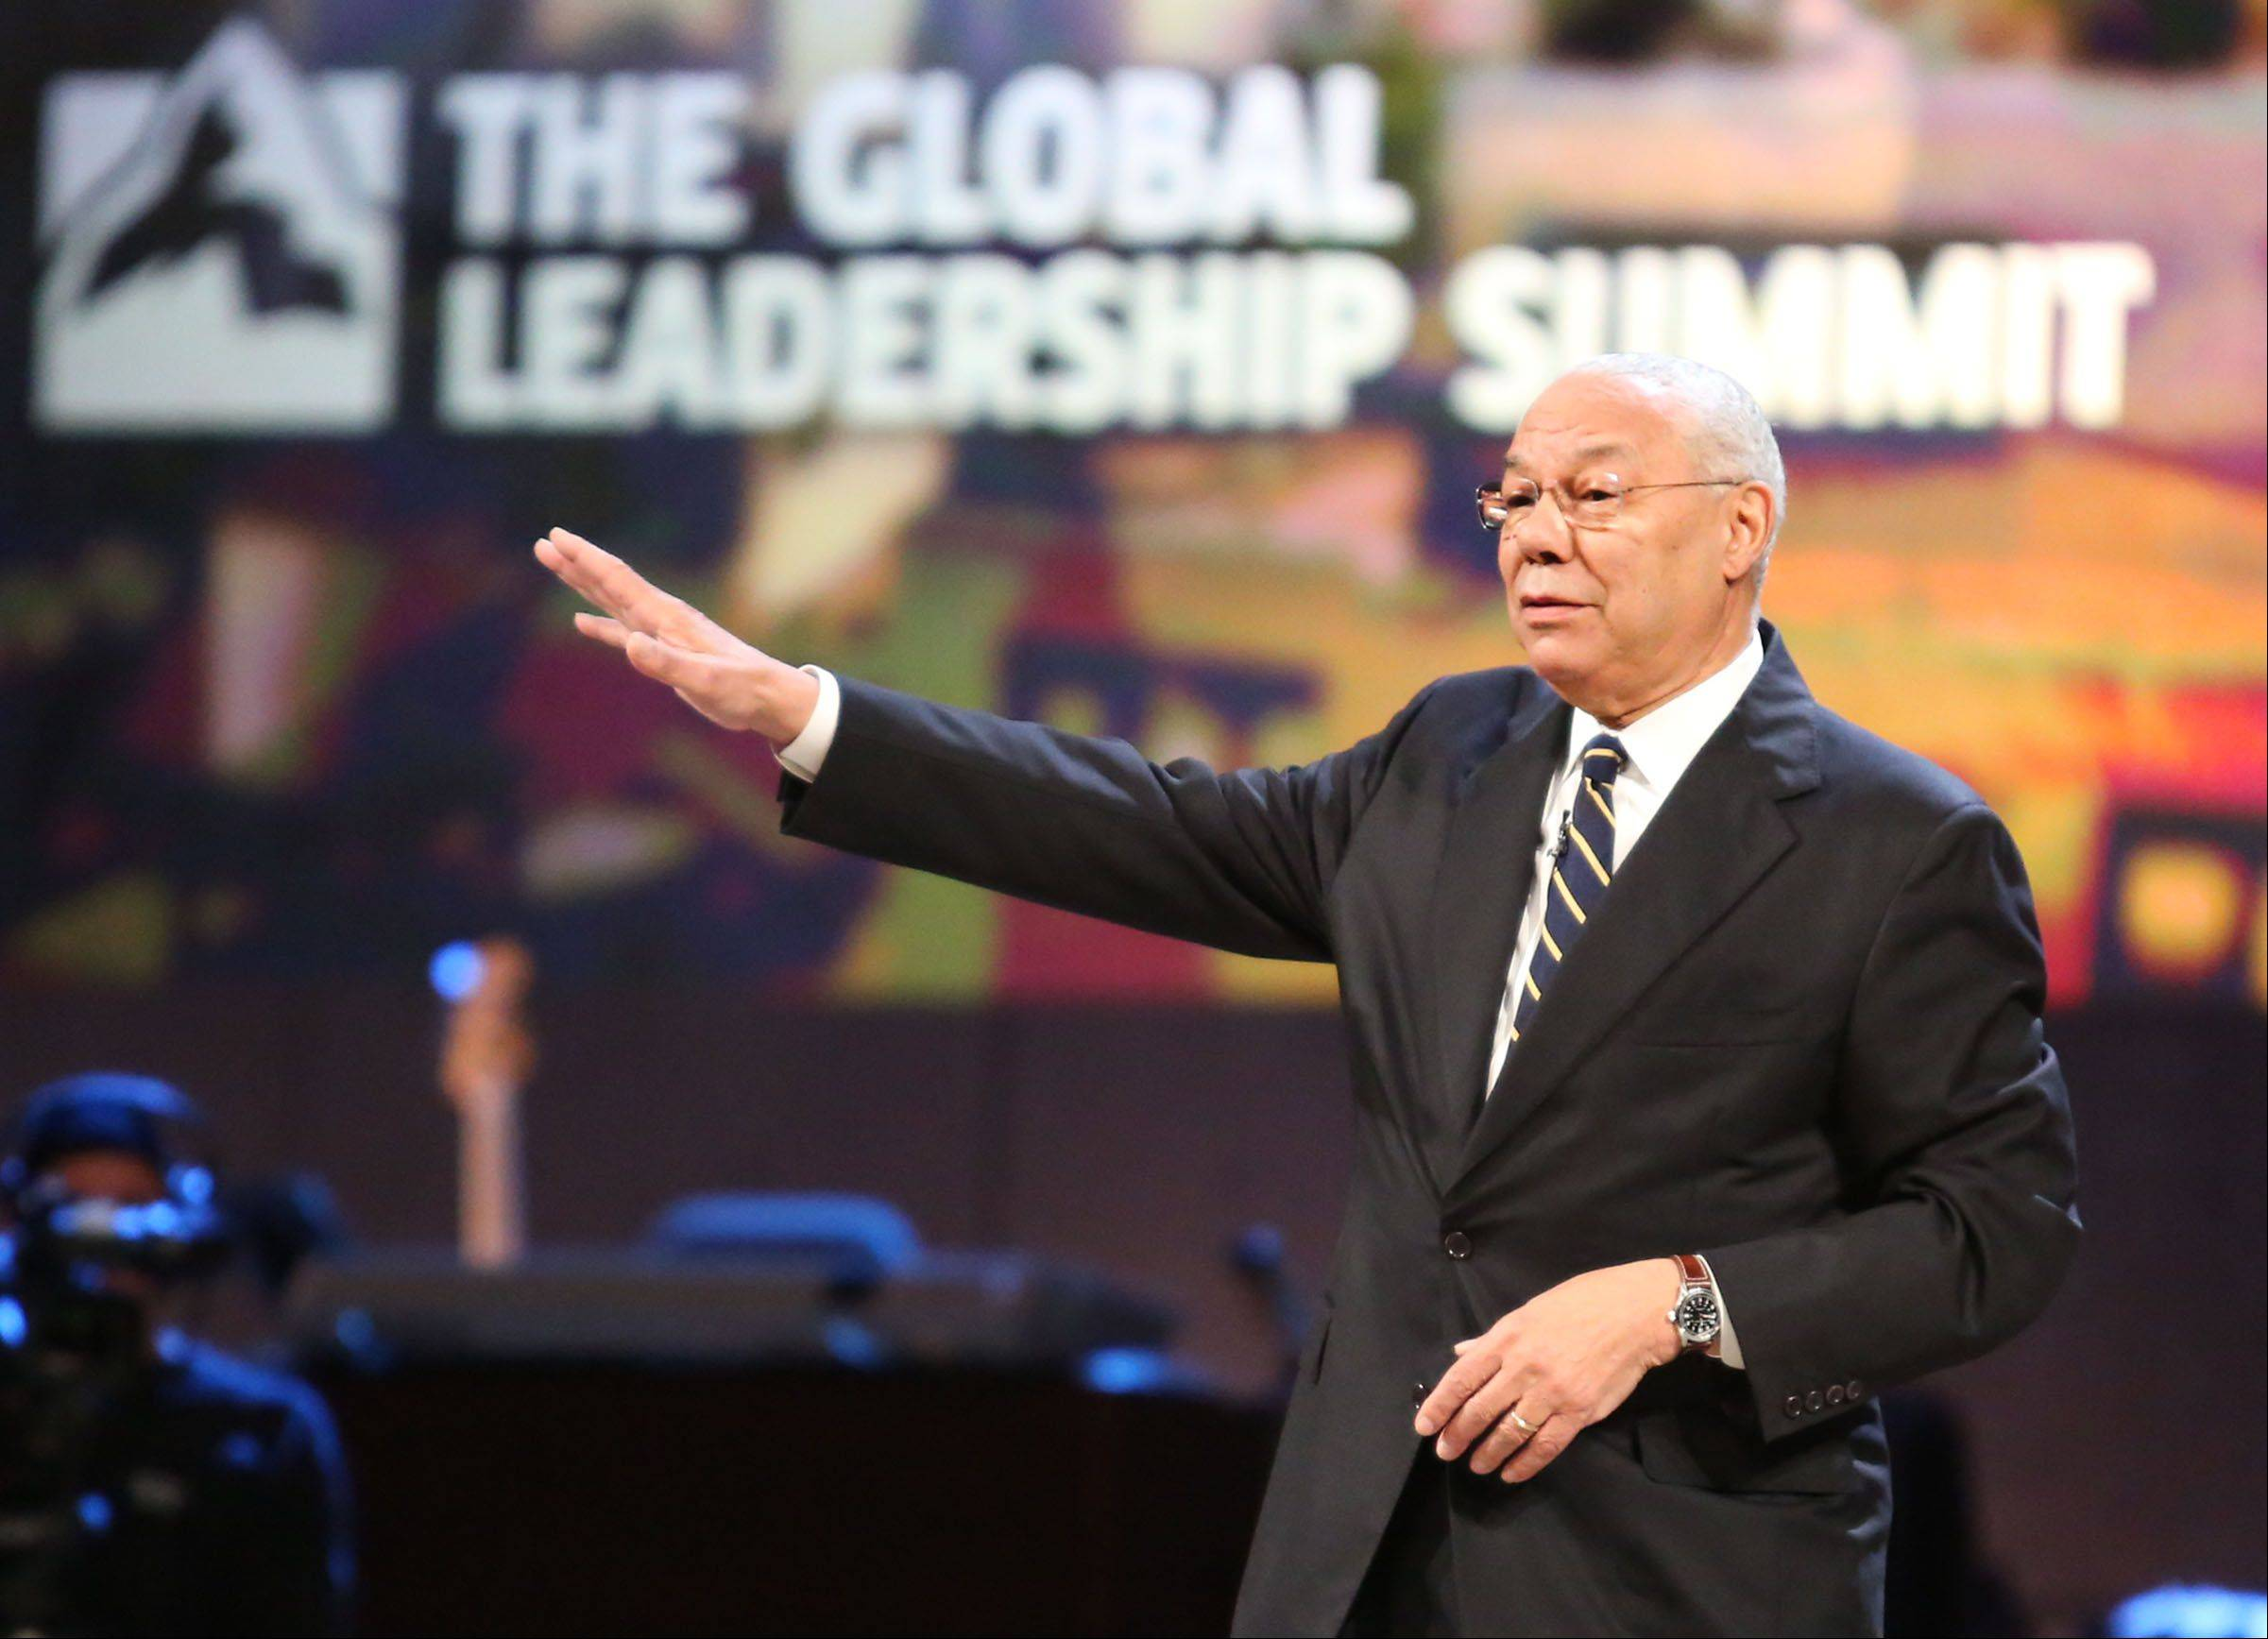 Gen. Colin Powell speaks at Willow Creek Community Church's Global Leadership Summit in South Barrington on Thursday.